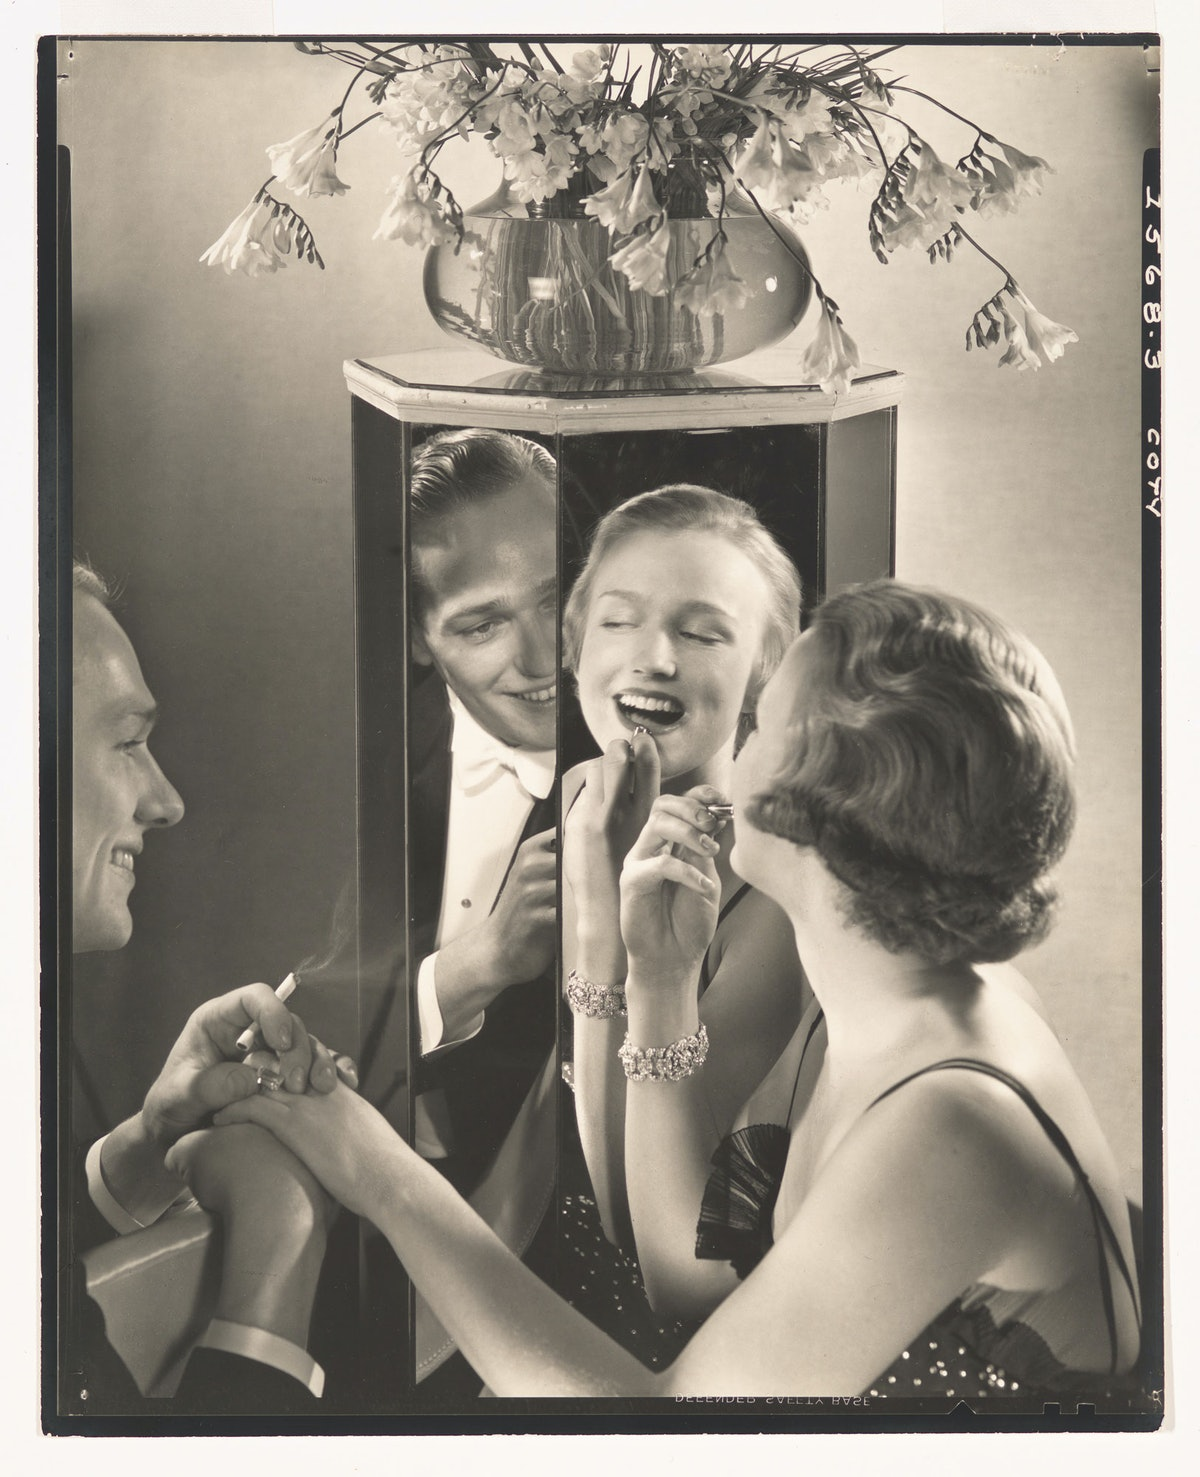 Edward Steichen, *Ad for Coty Lipstick*, (c. 1930). Whitney Museum of American Art, New York; © Permission of the Estate of Edward Steichen.